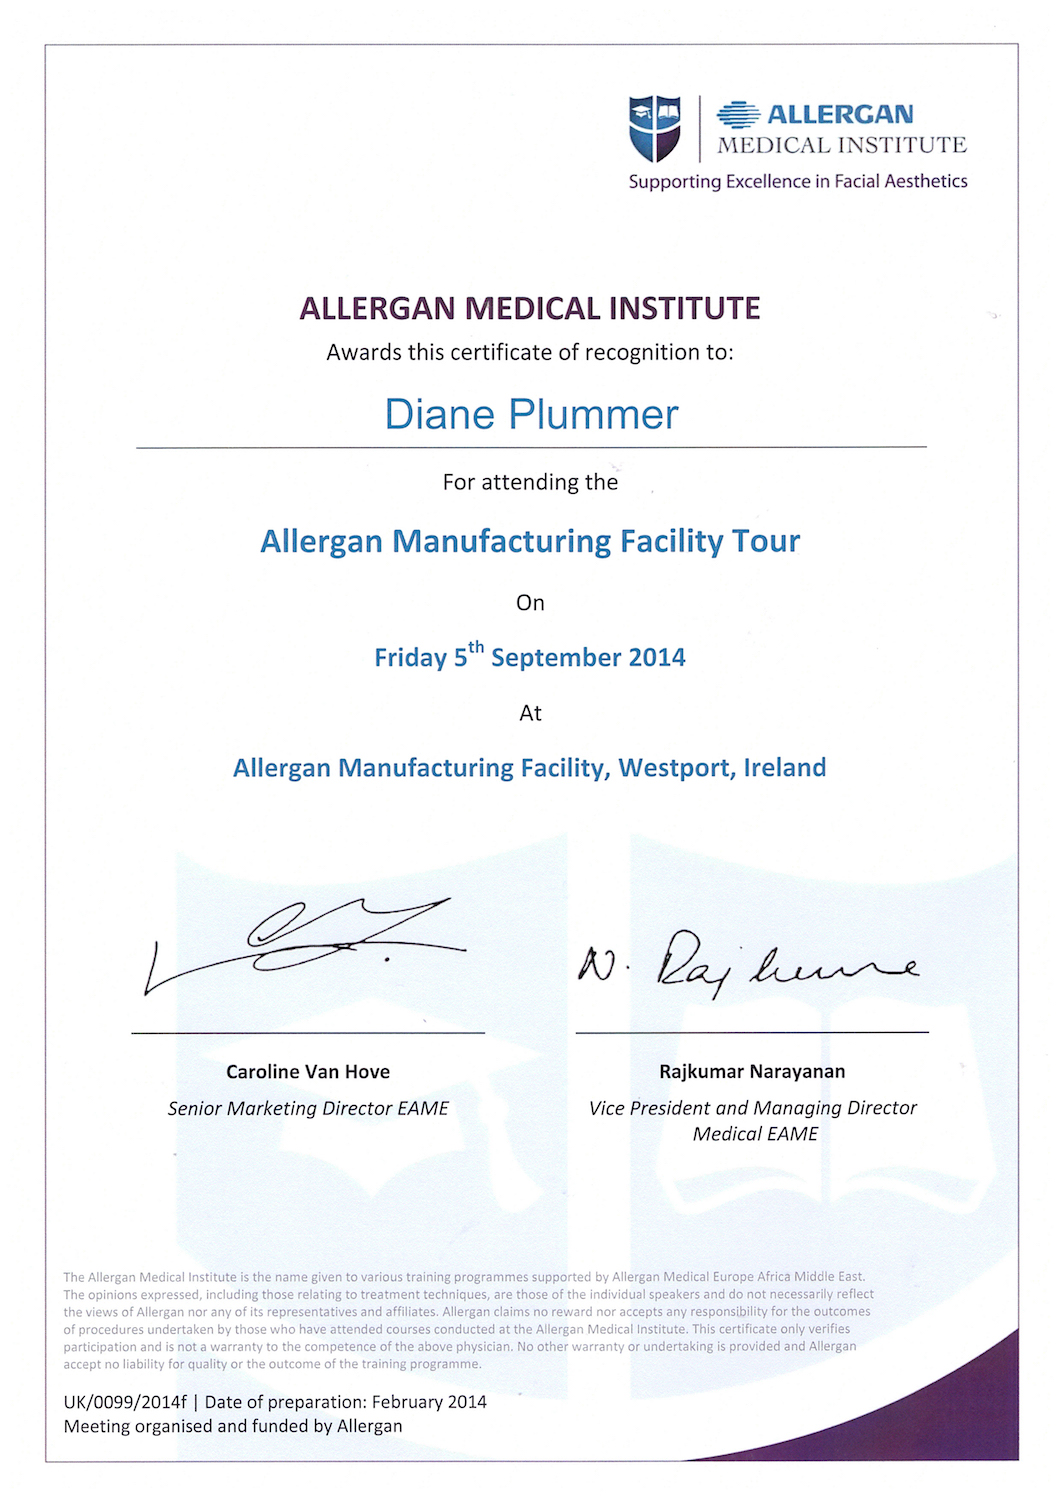 Allergan Medical Institute - Allergan Manufacturing Facility Tour Westport, Ireland